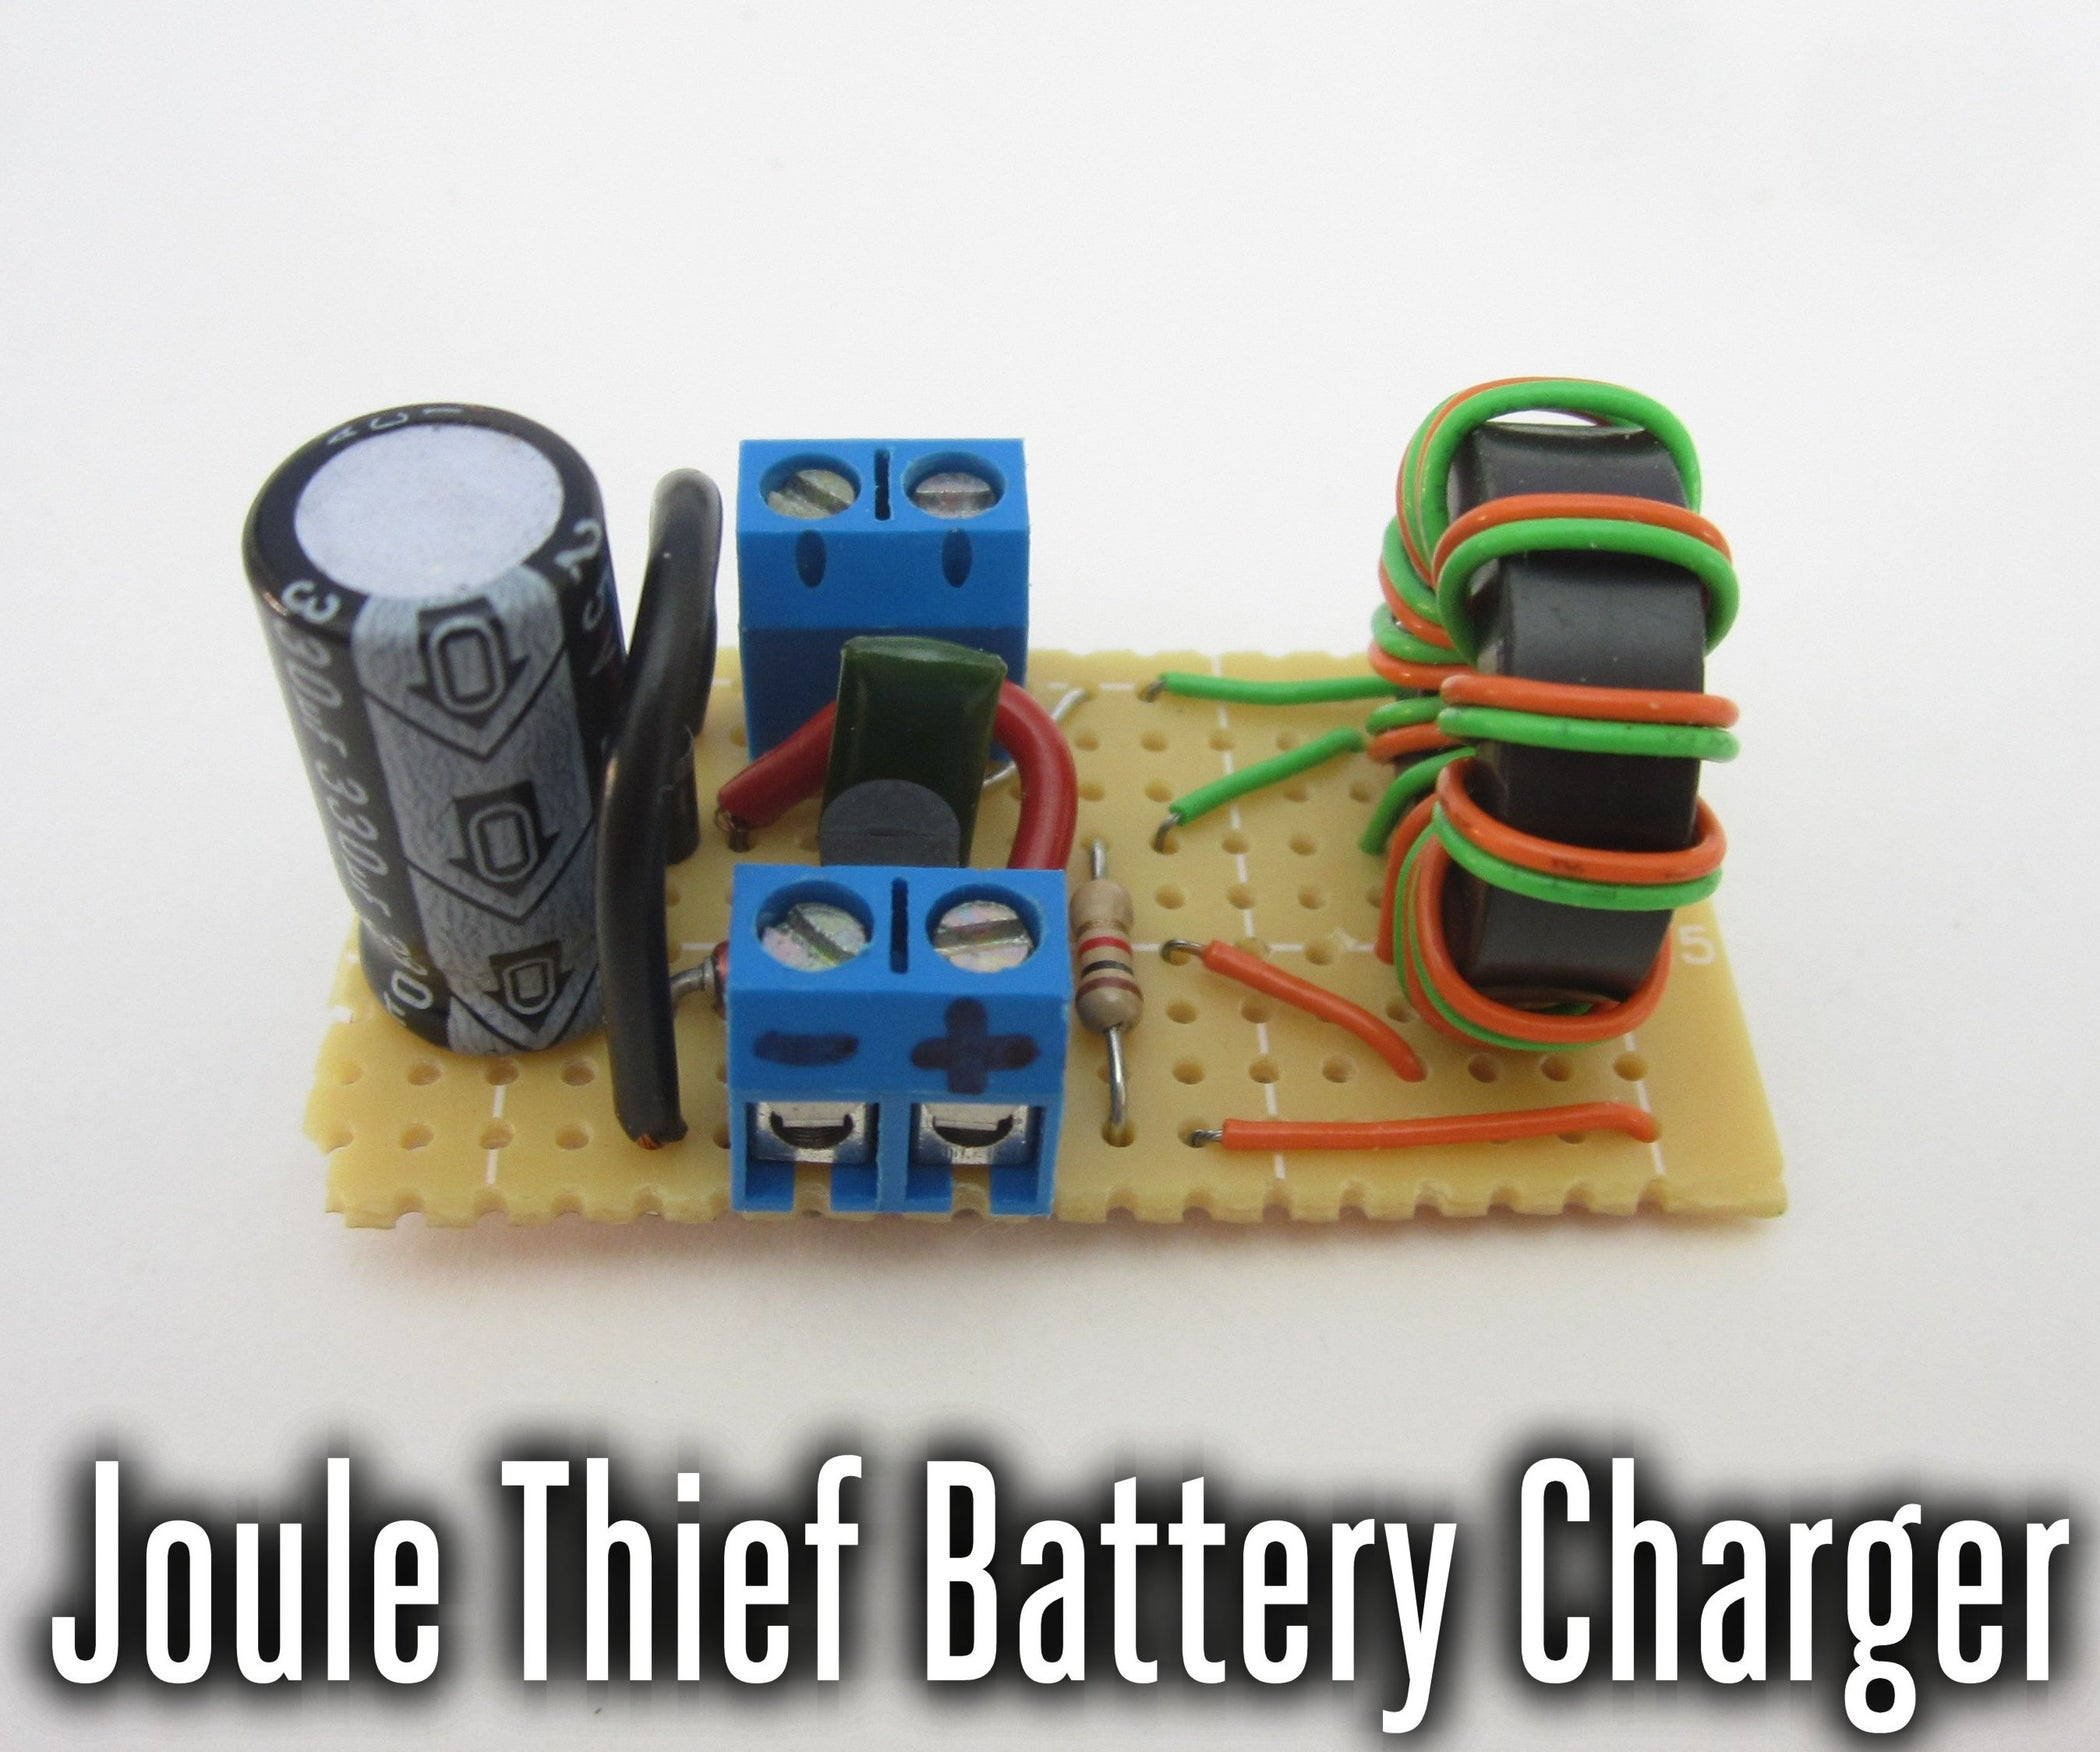 How To Make A Nimh Nicd Battery Charger Circuit Homemade Joule Thief Low Voltage 9 Steps With Pictures